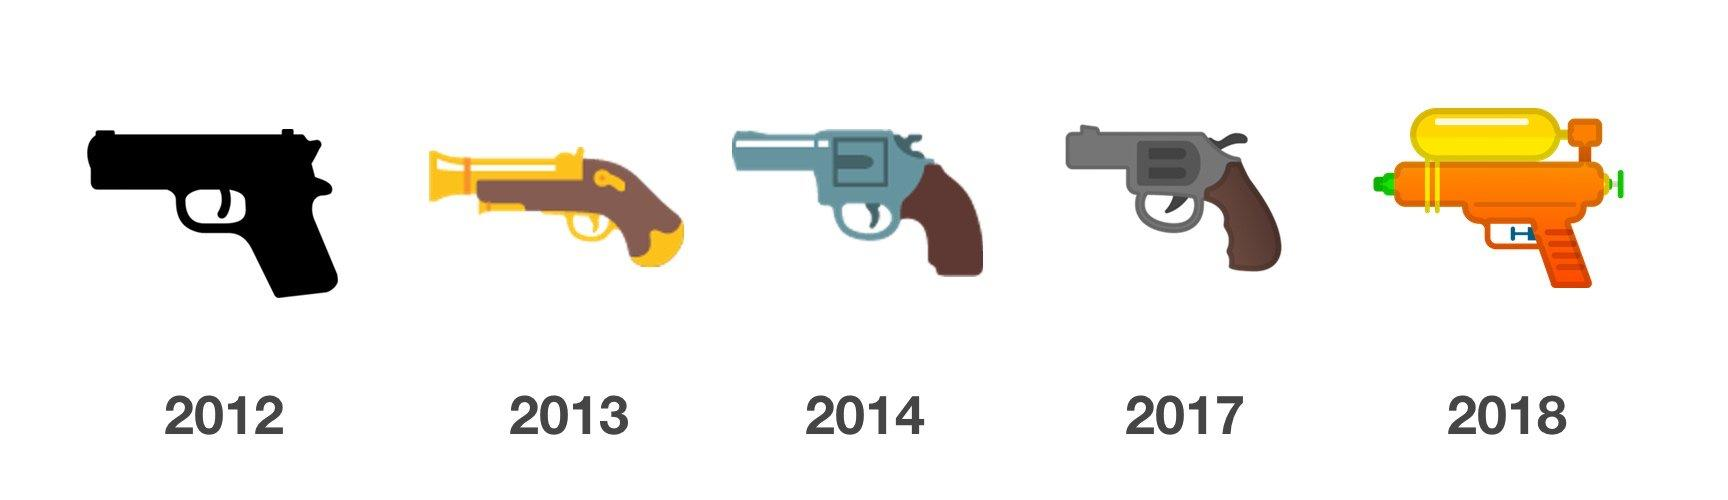 Cut and Paste Emoji: Google Gun goes Watergun, a short history